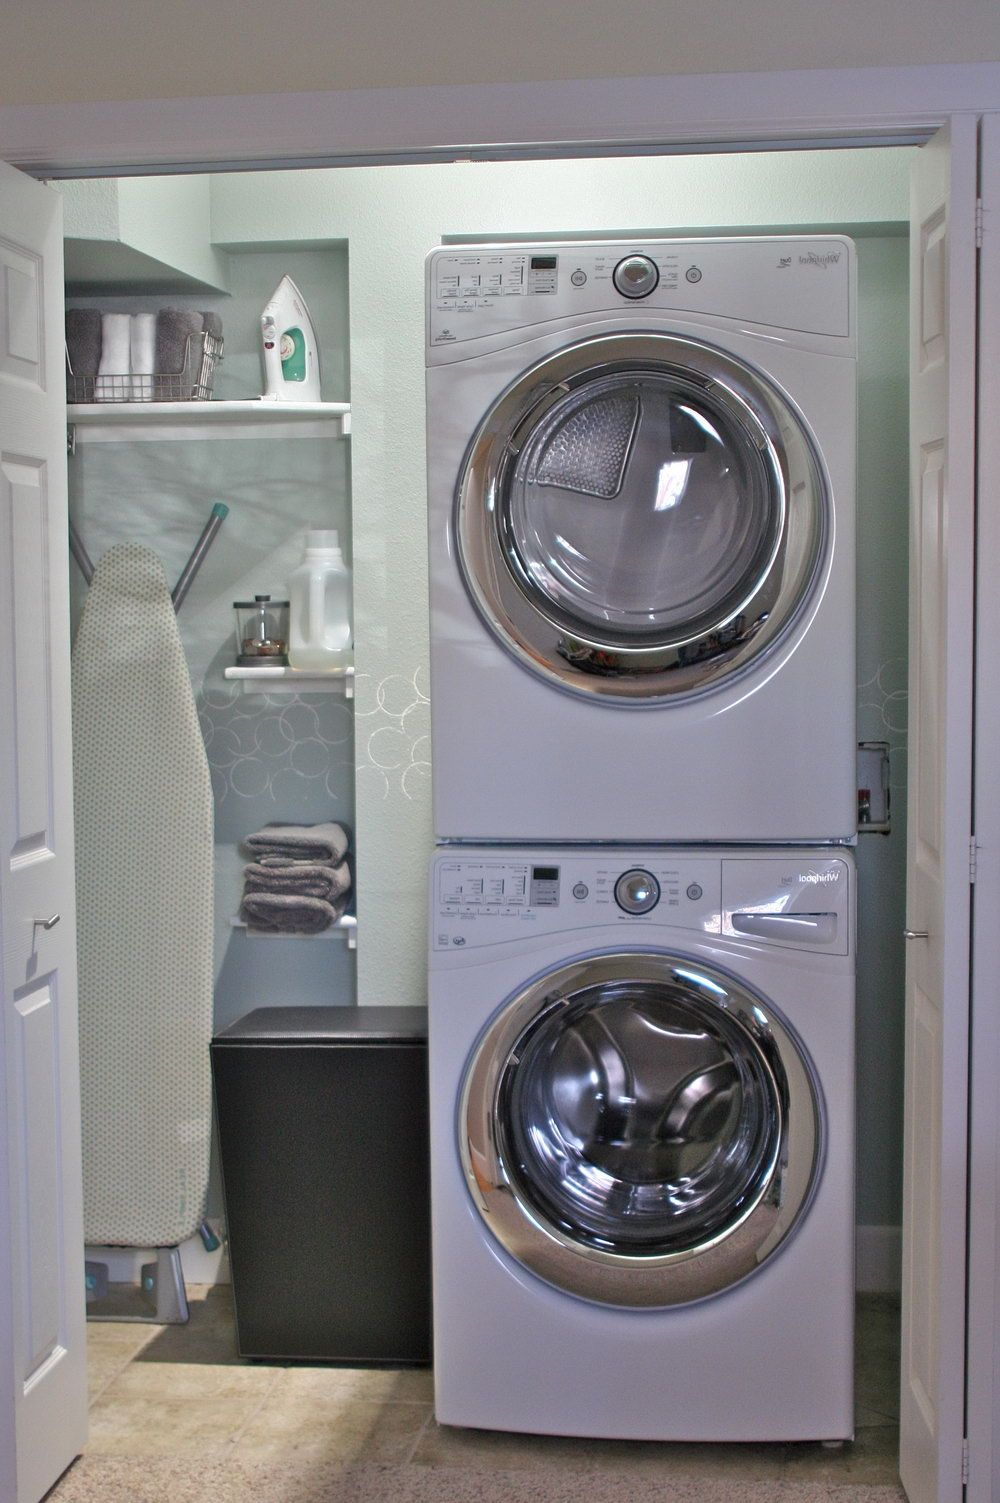 effective stackable washer and dryer laundry room ideas excellent small laundry room - Small Washer And Dryer